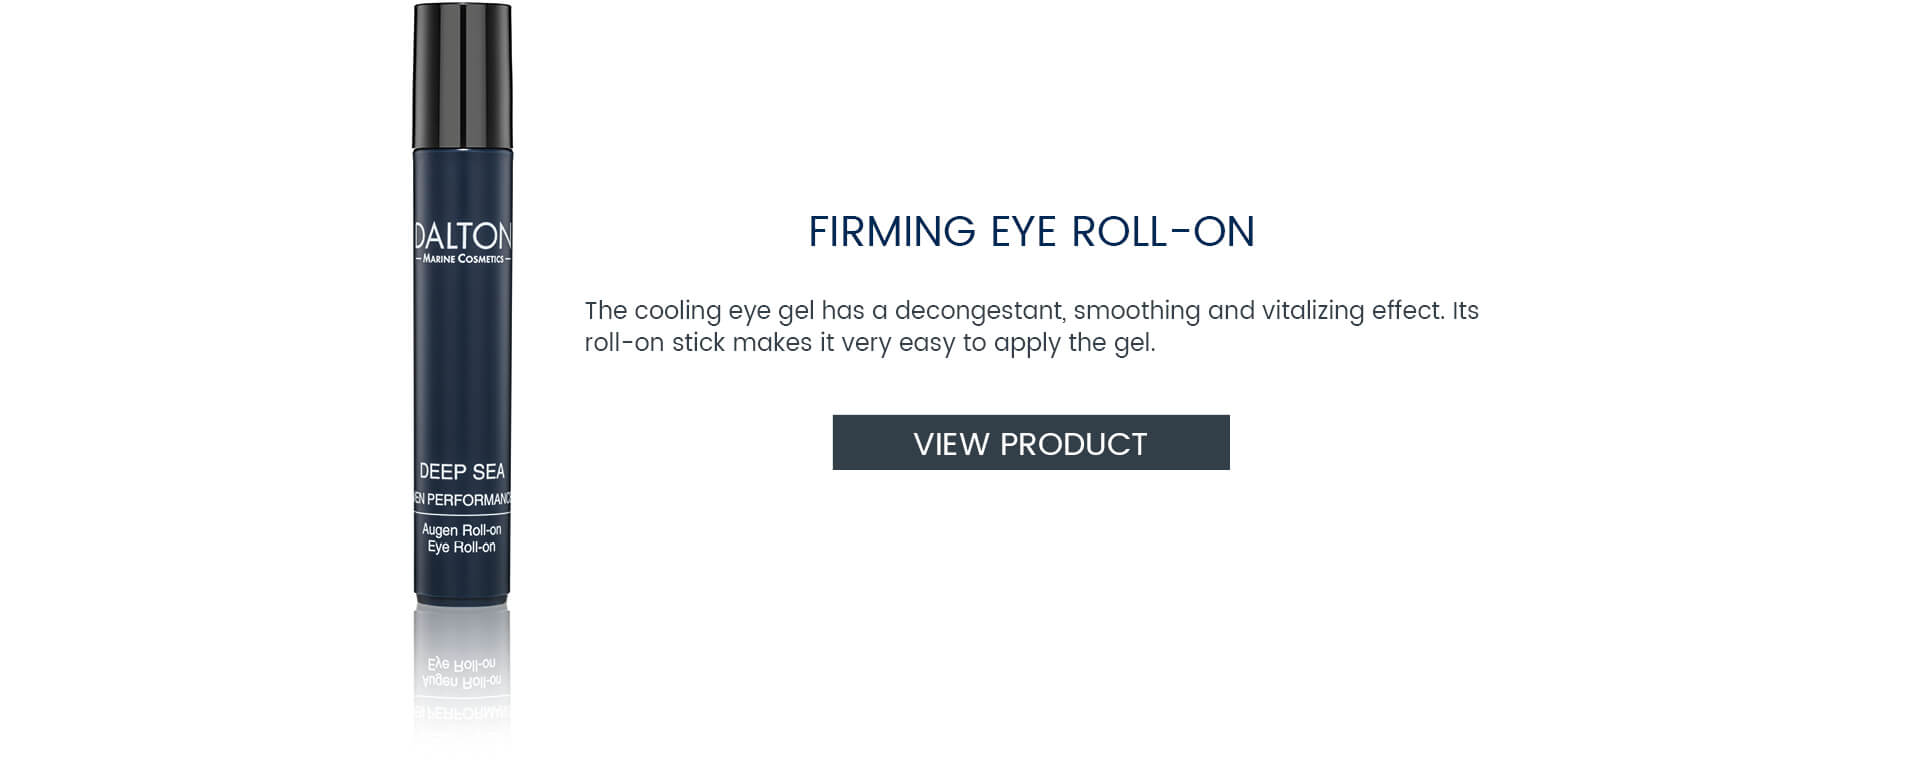 Eye Gel for men's skin